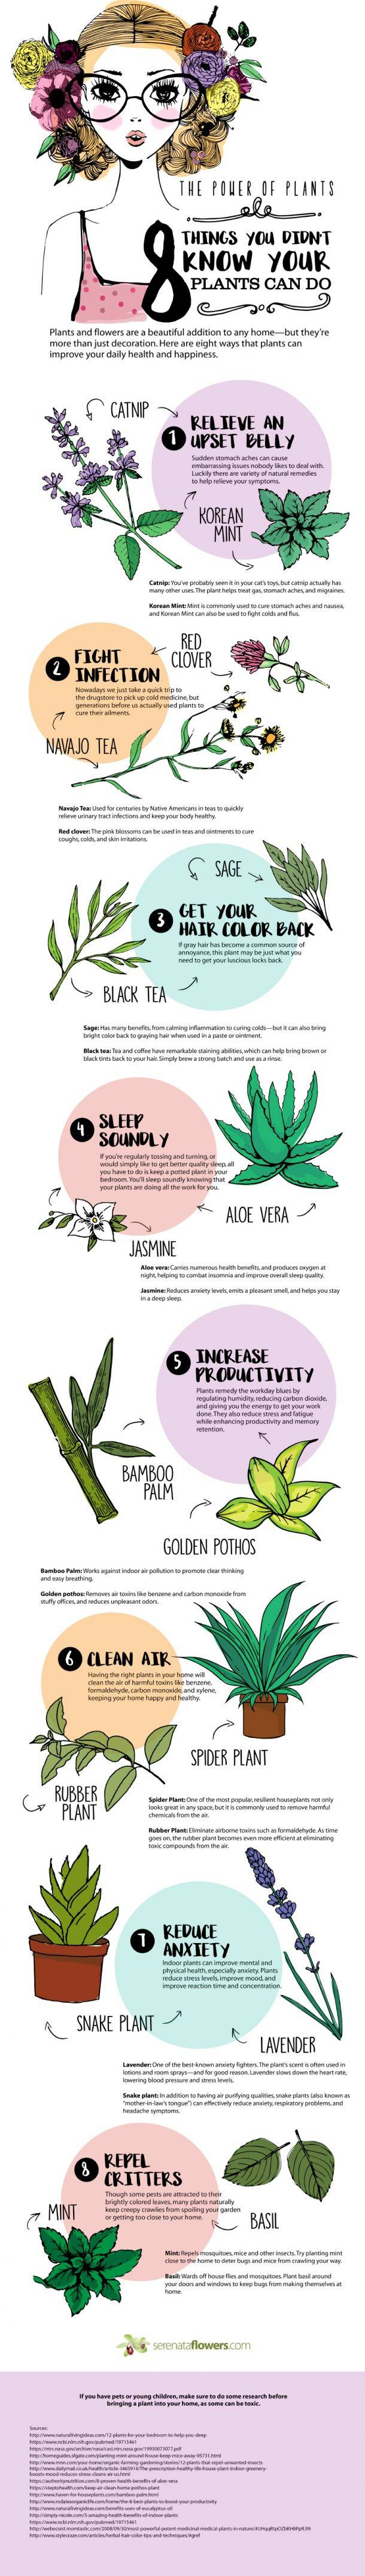 unique powers of plants